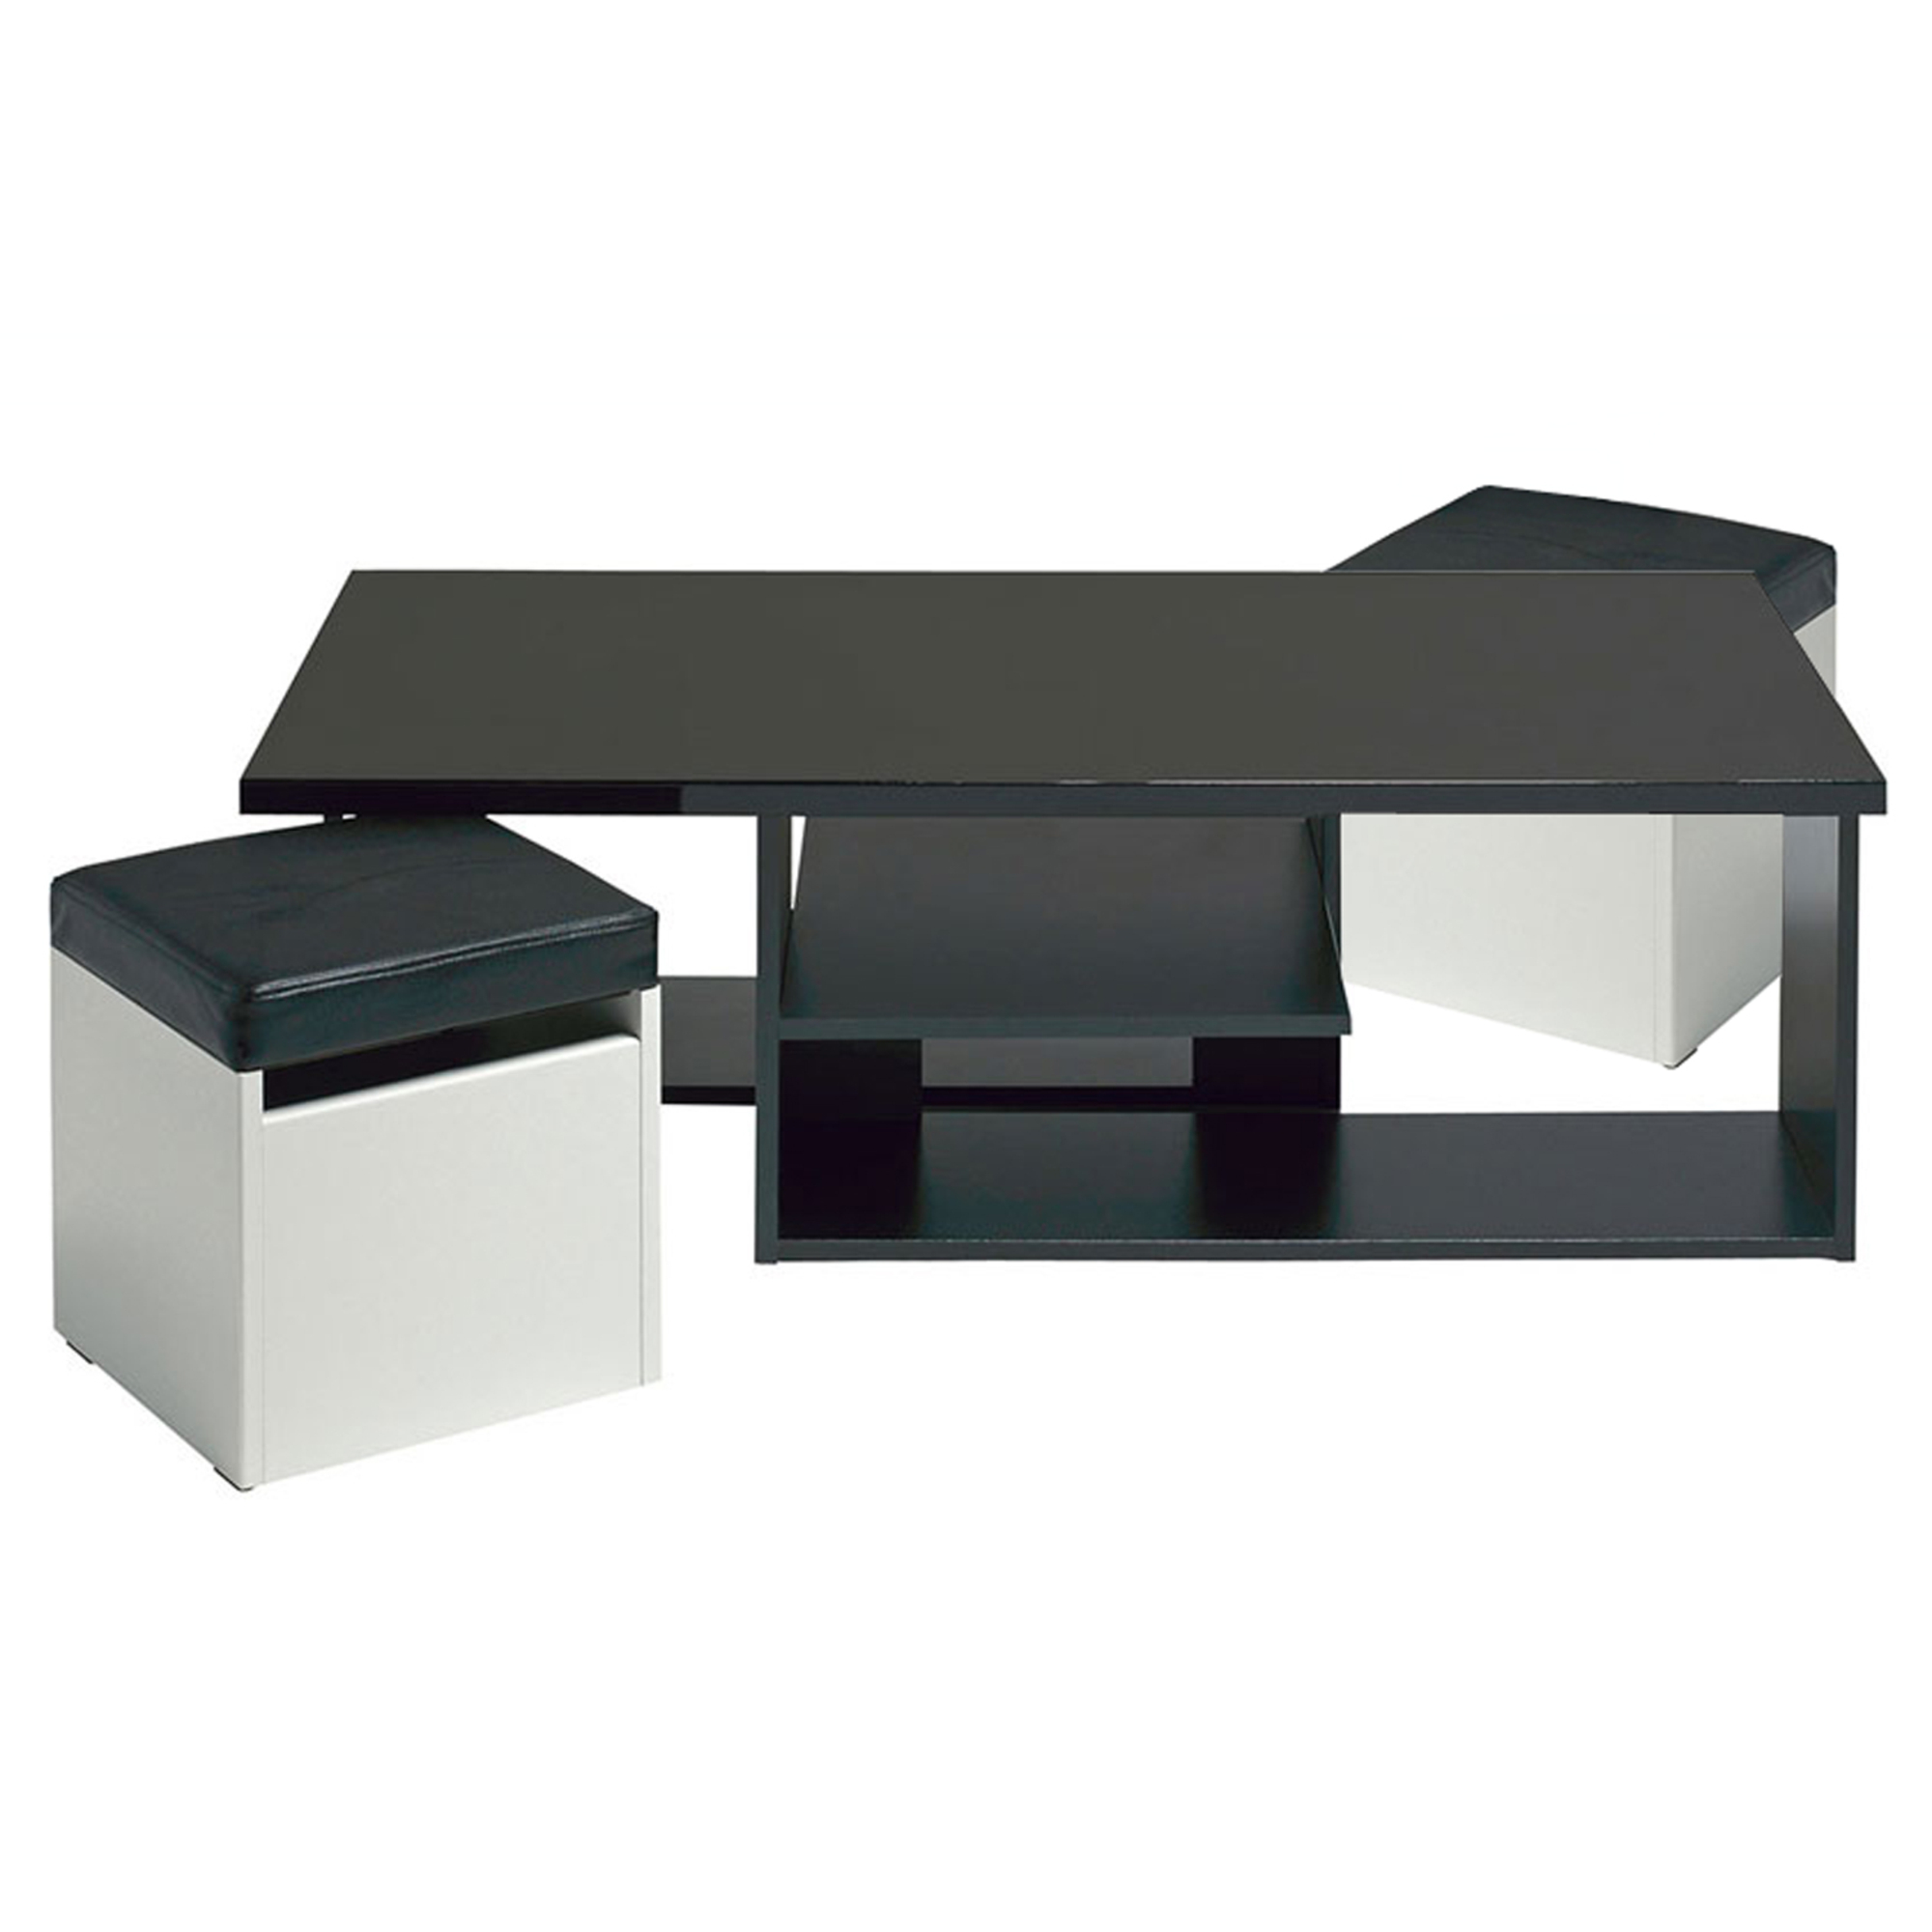 table basse 2 poufs egerie noir ultra brillant frais. Black Bedroom Furniture Sets. Home Design Ideas